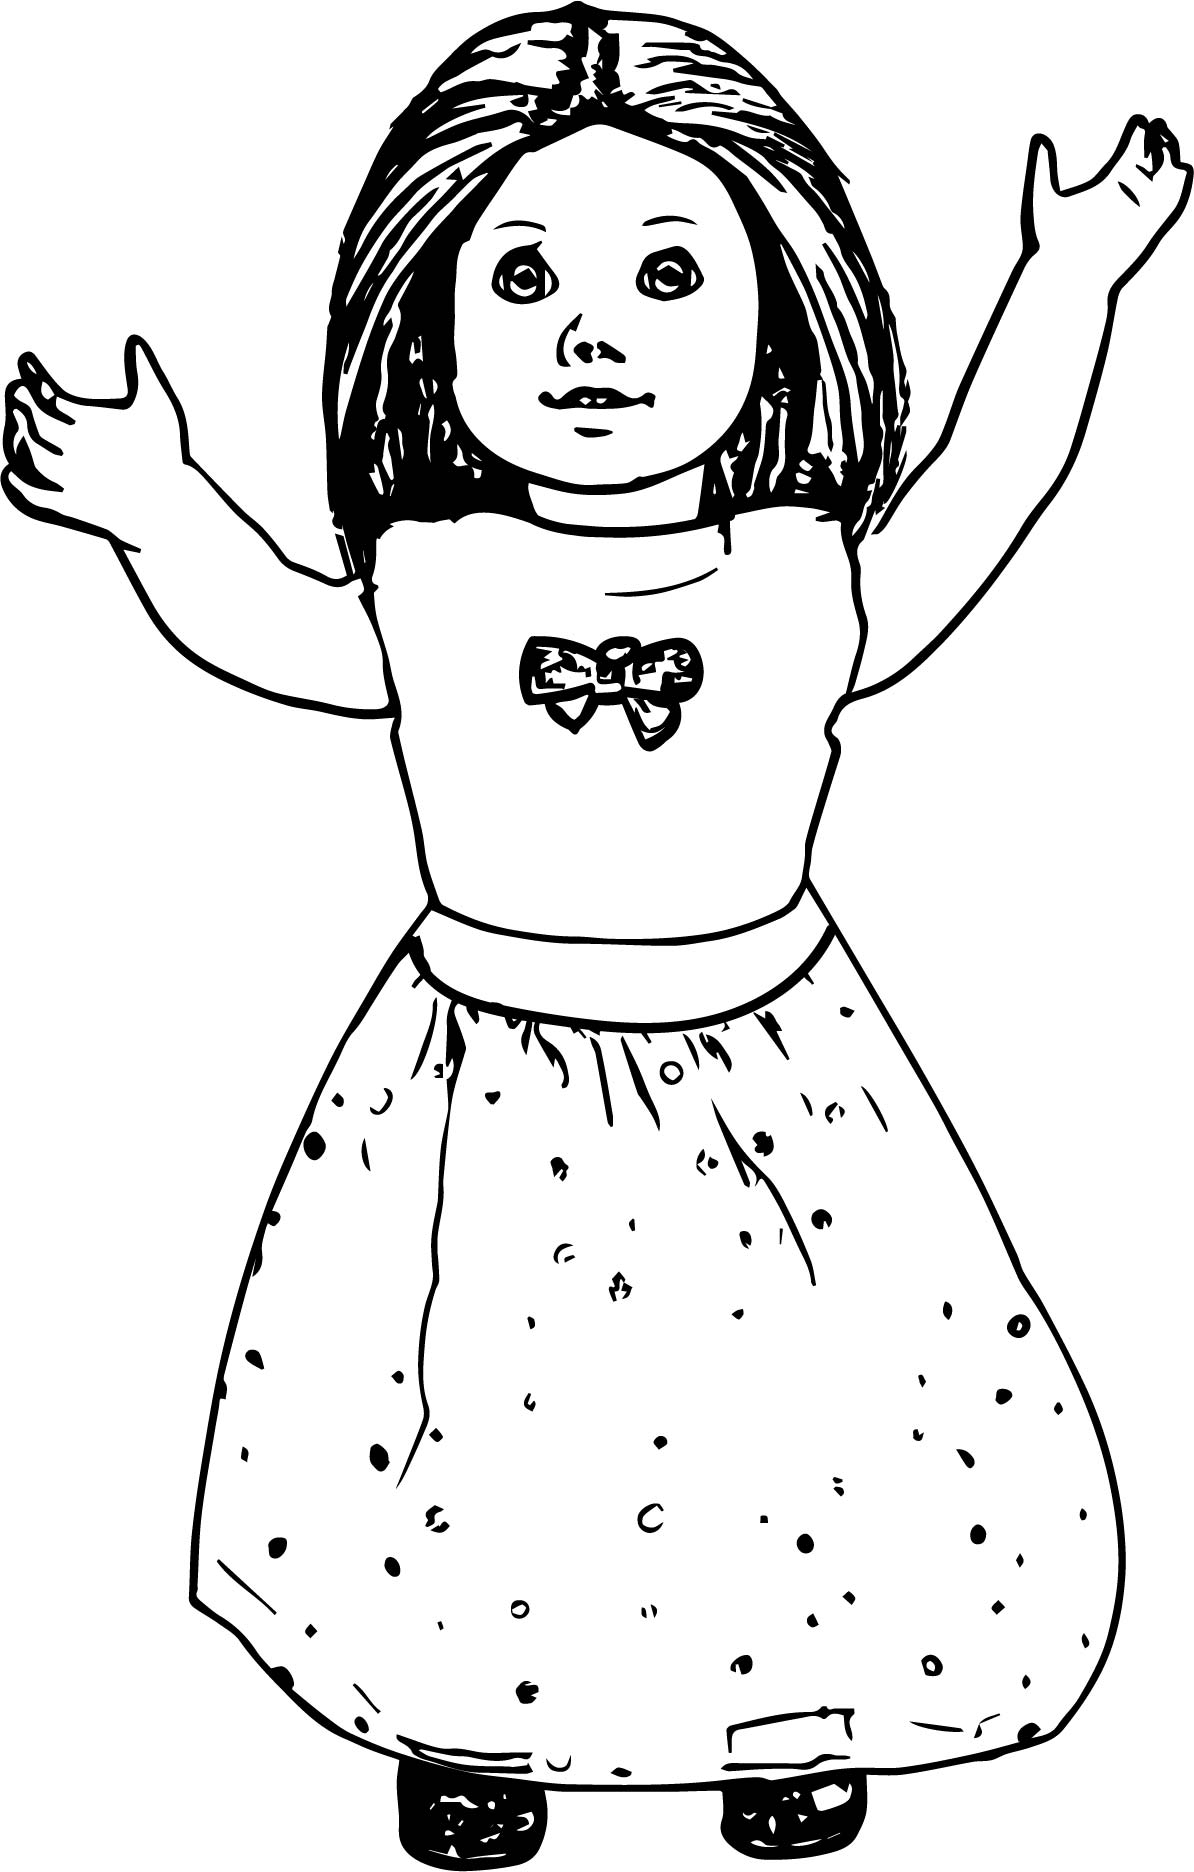 american girl pictures to color american girl coloring pages best coloring pages for kids american girl color to pictures